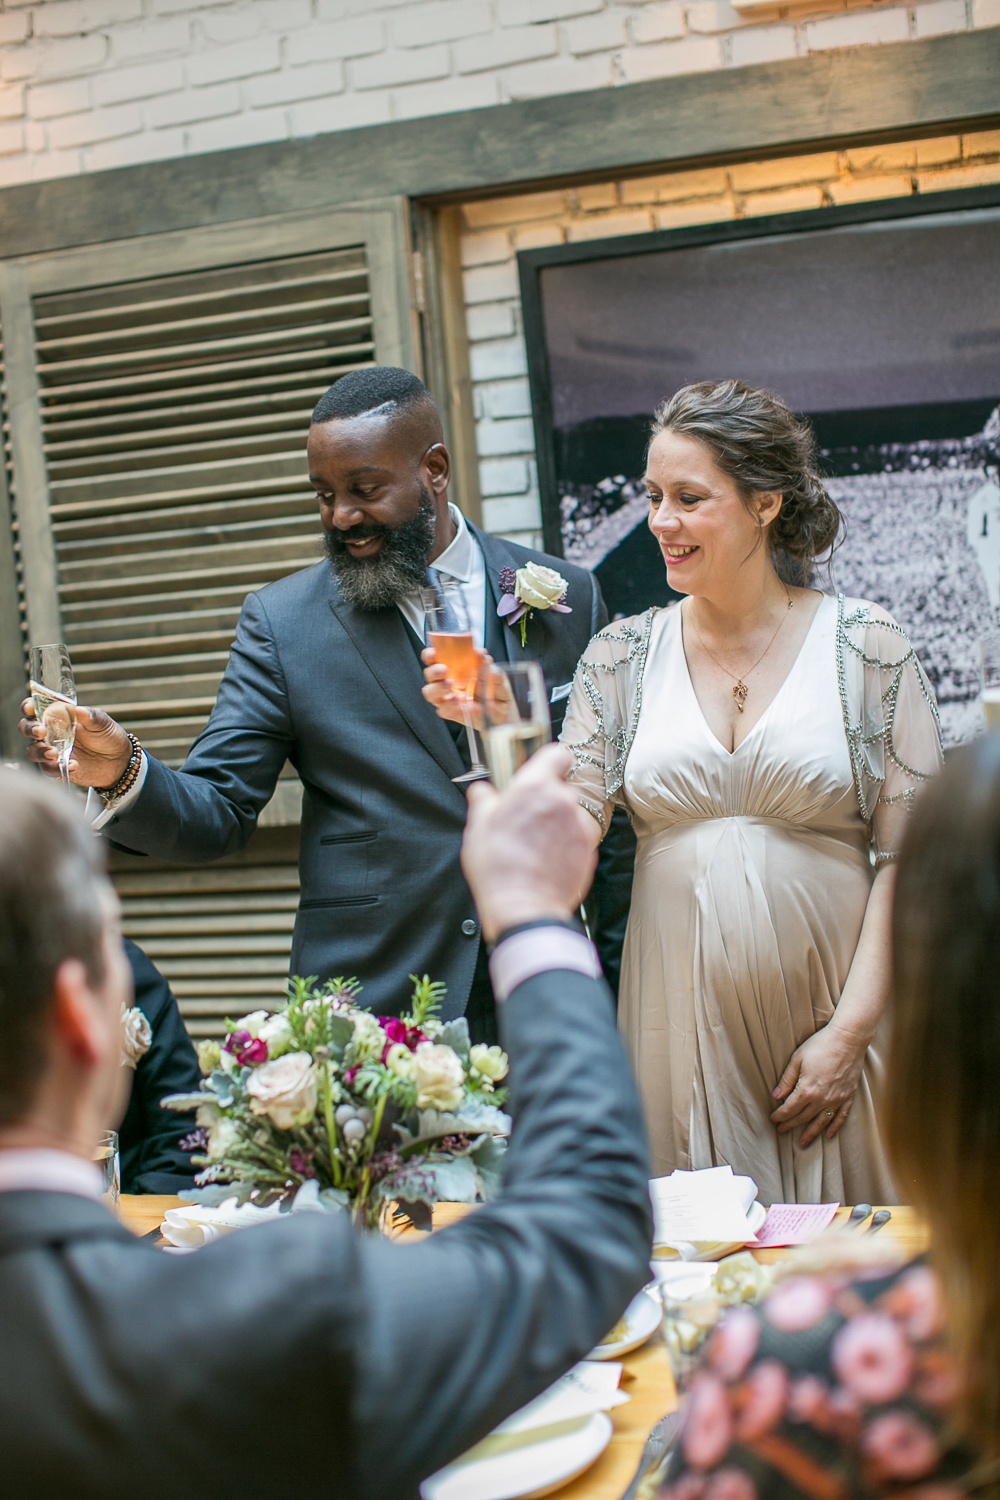 The bride and groom toasting at their Intimate Restaurant Wedding in Manhattan. | Upper West Side Intimate Wedding | Kate & Sylvester's wedding in Manhattan.